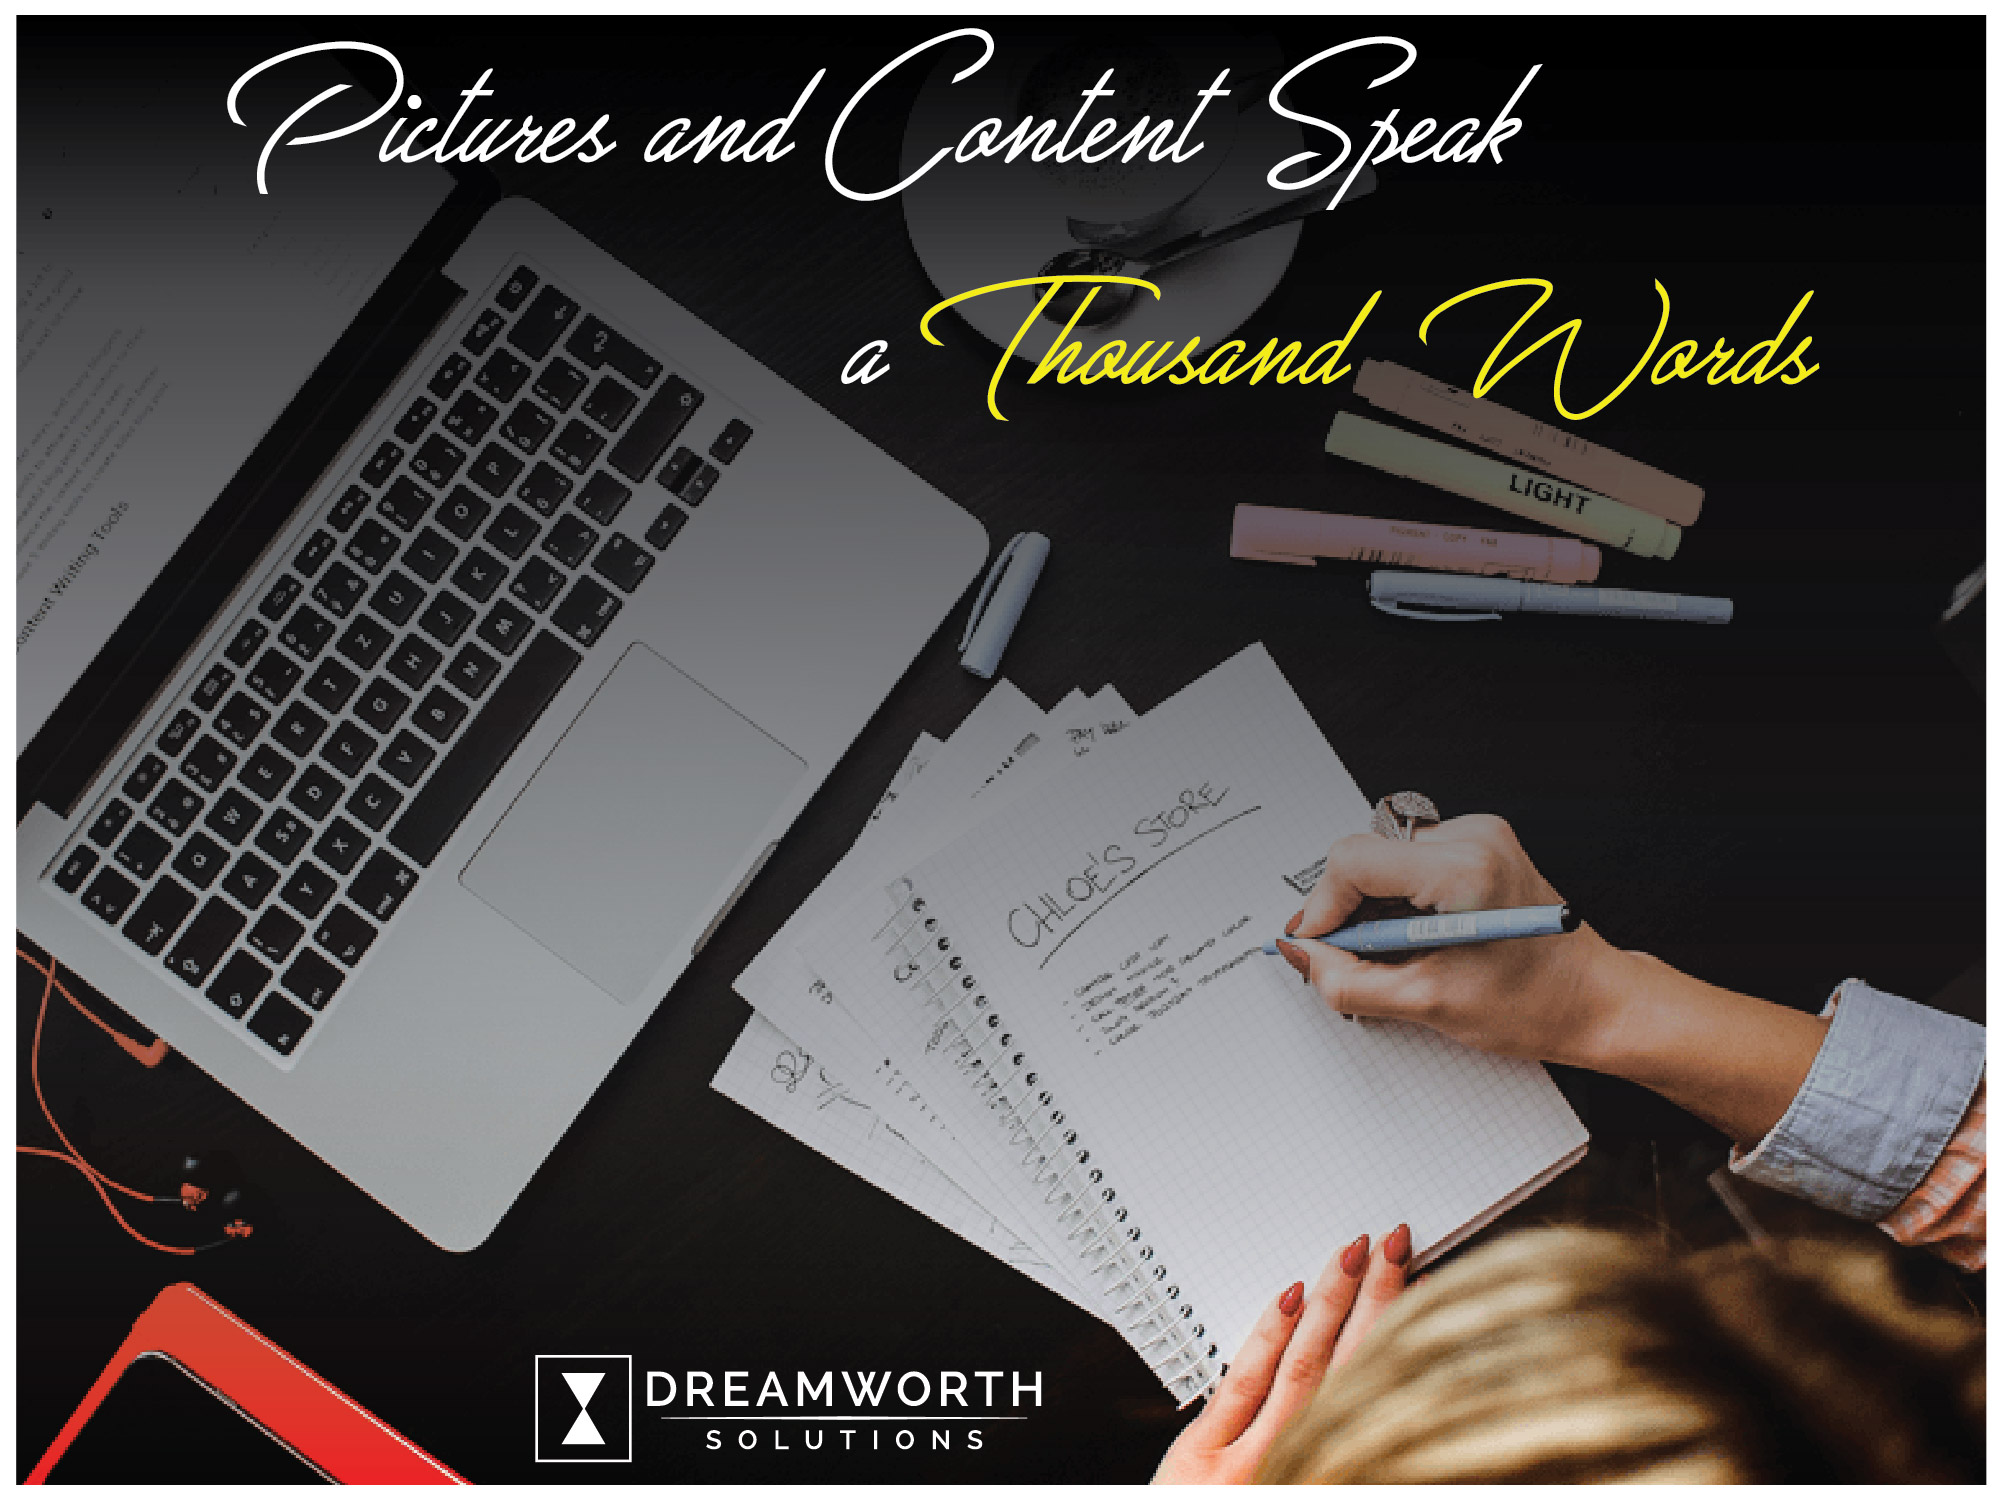 Dreamworth provide best internet marketing services